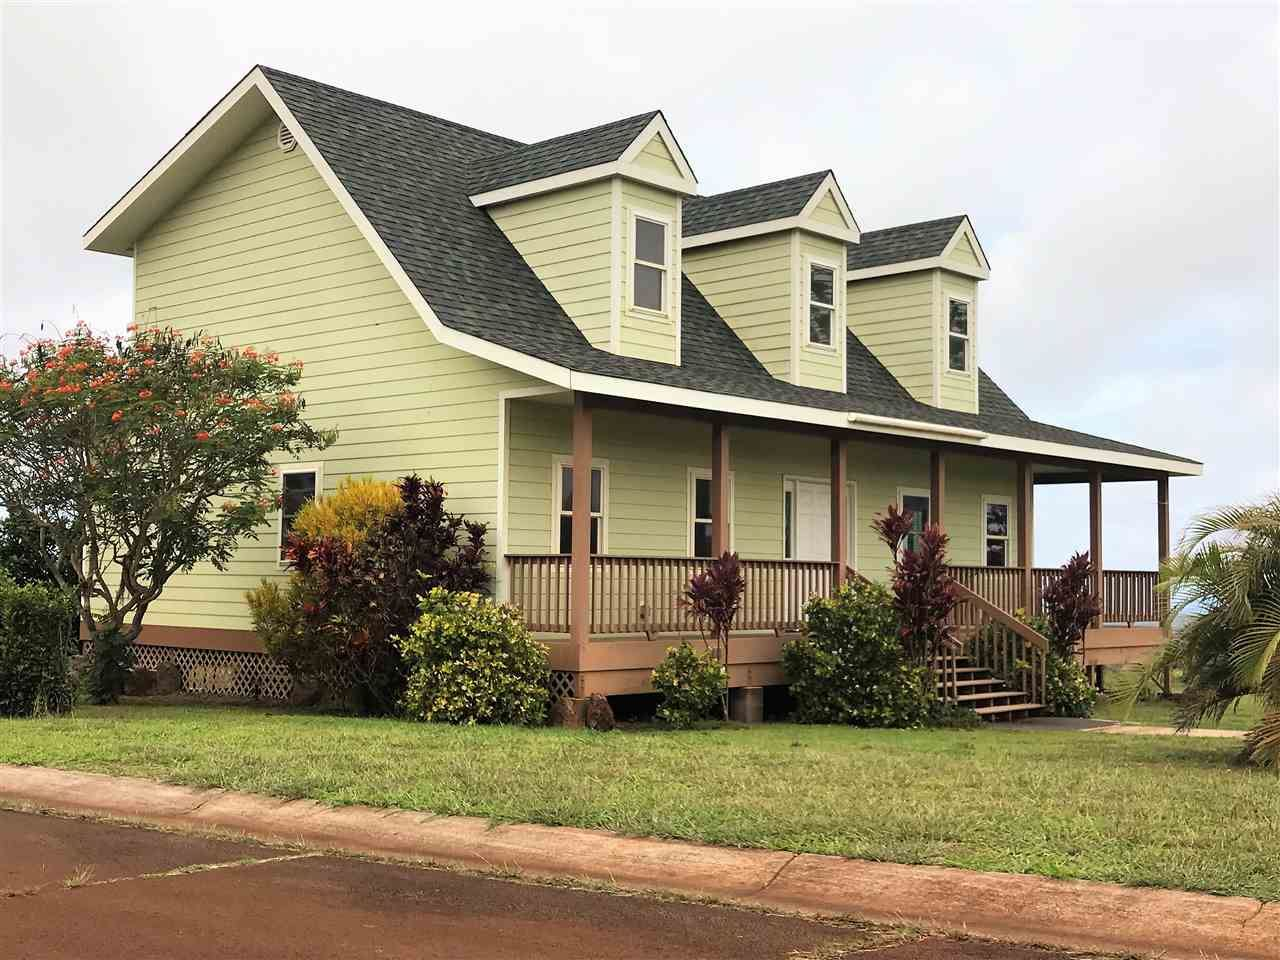 Photo of 103 Kaana St, Maunaloa, HI 96770 (MLS # 386428)